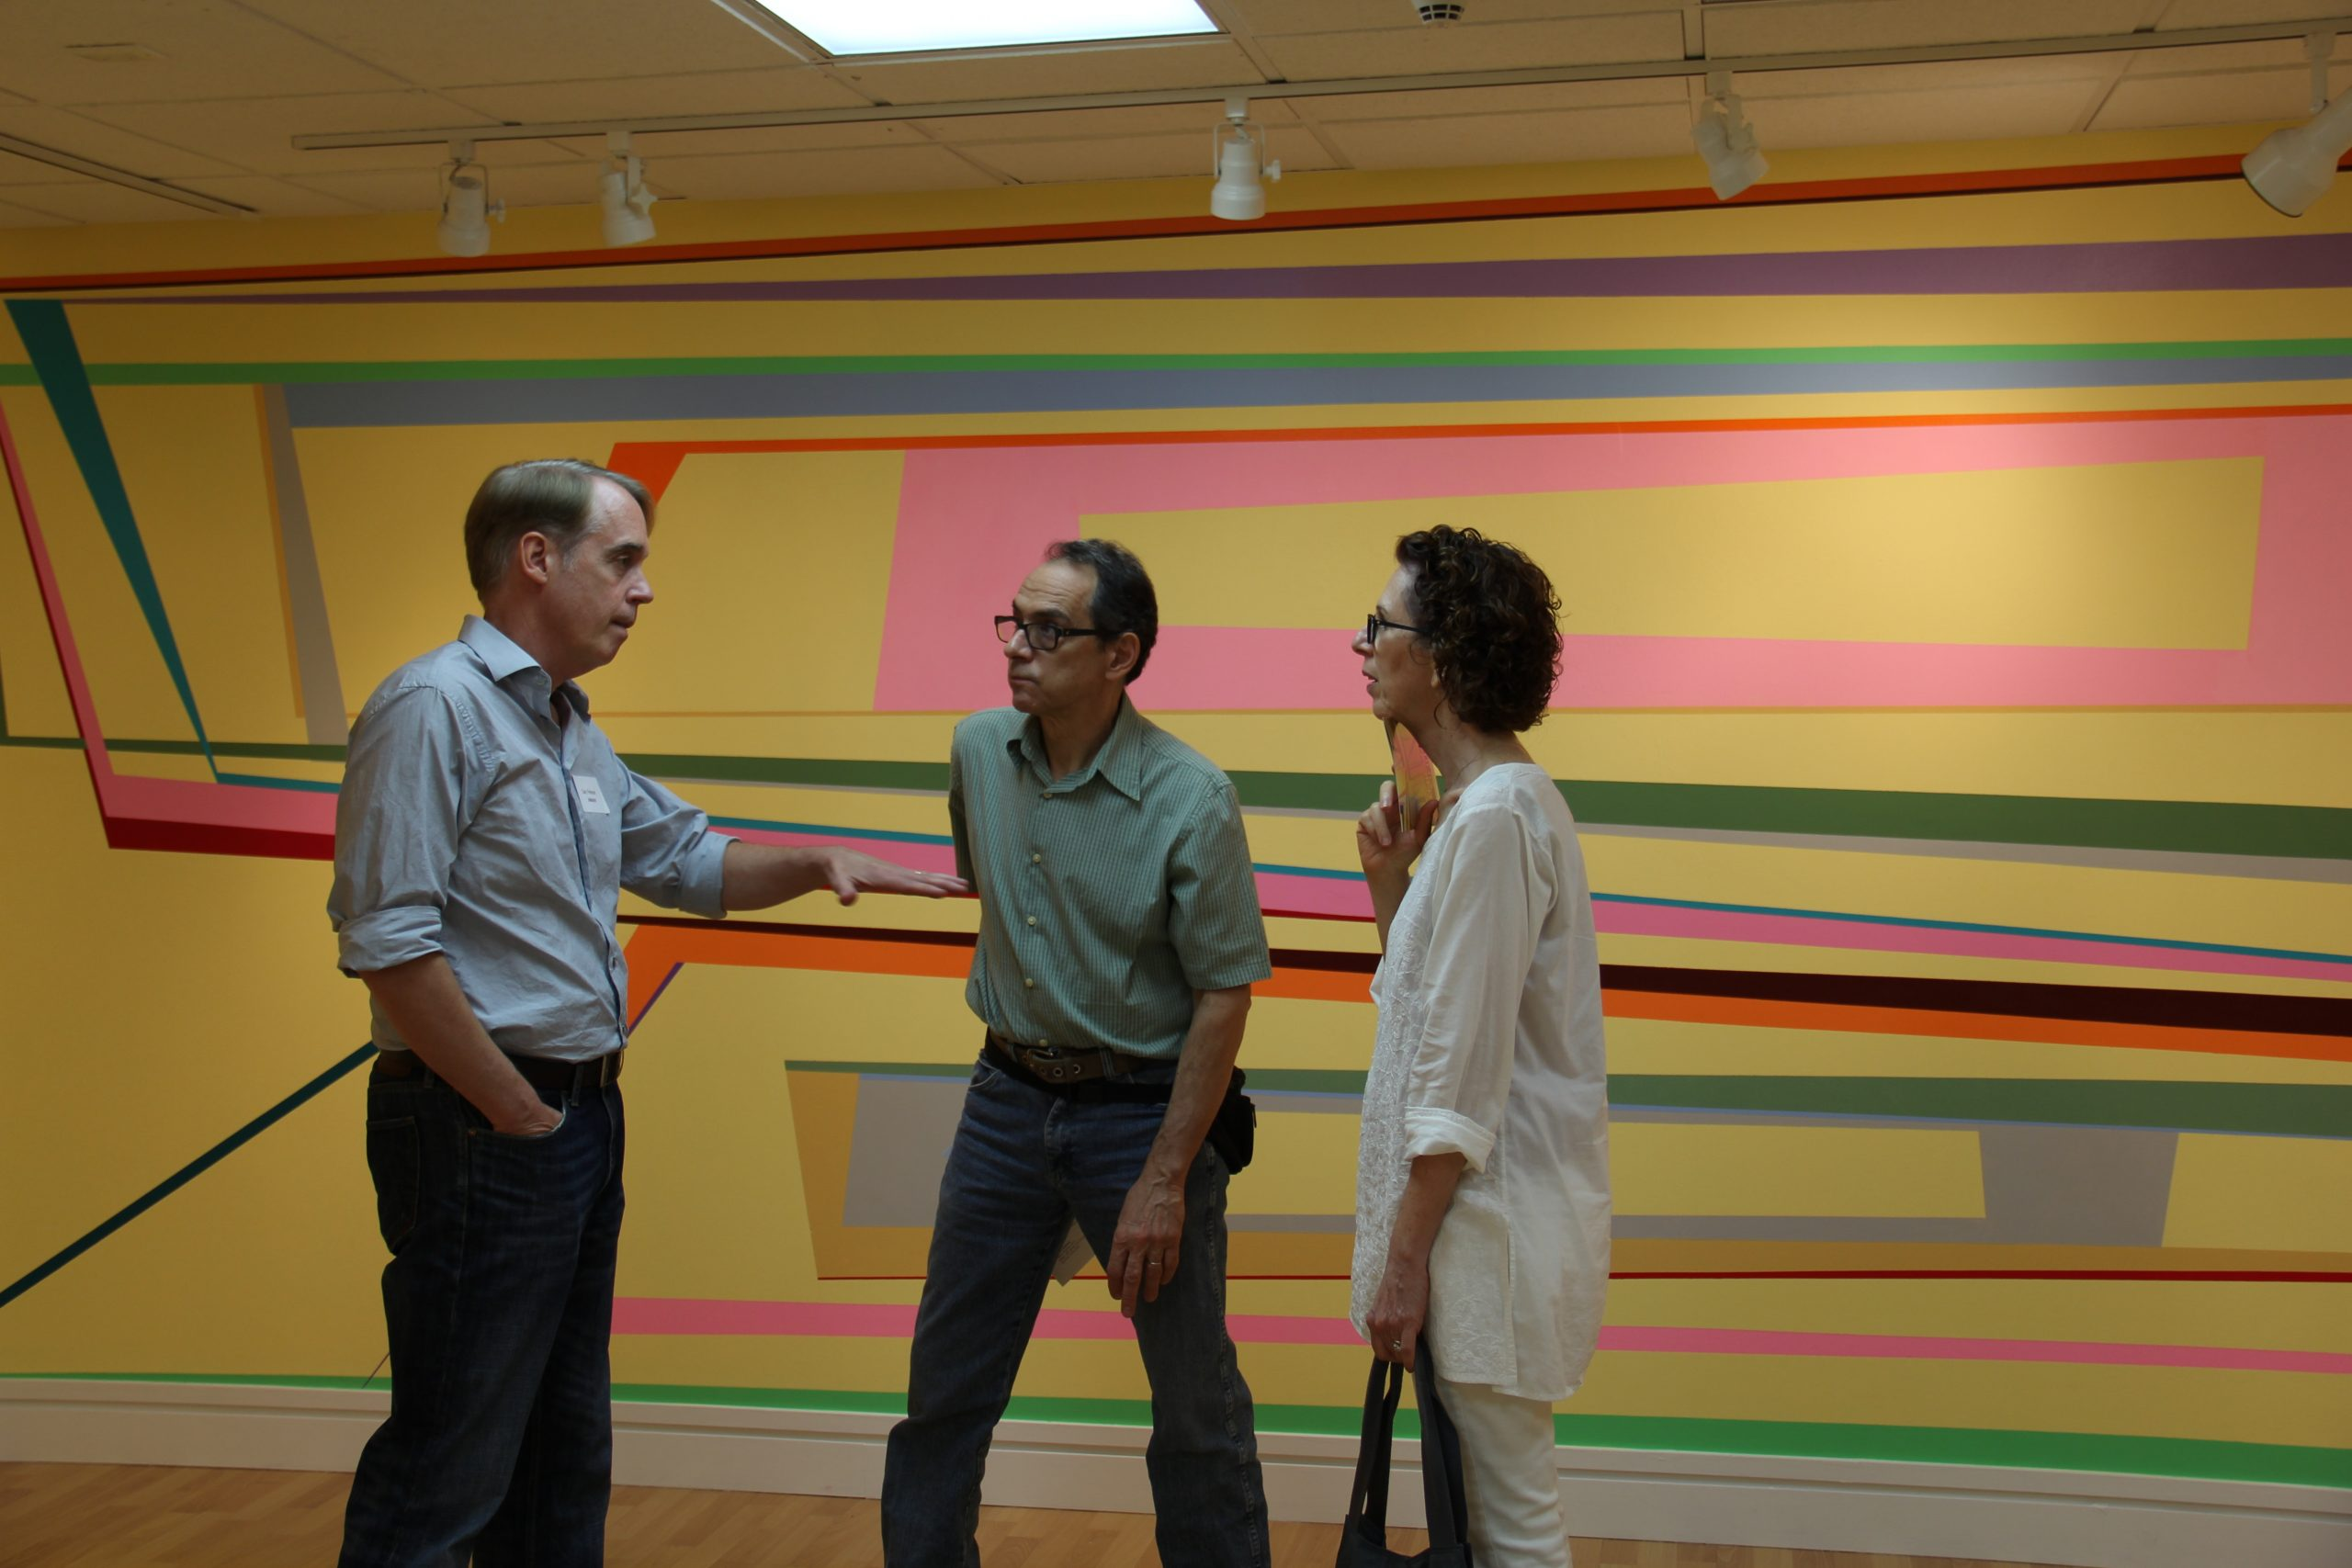 Gary Petersen talking with visitors